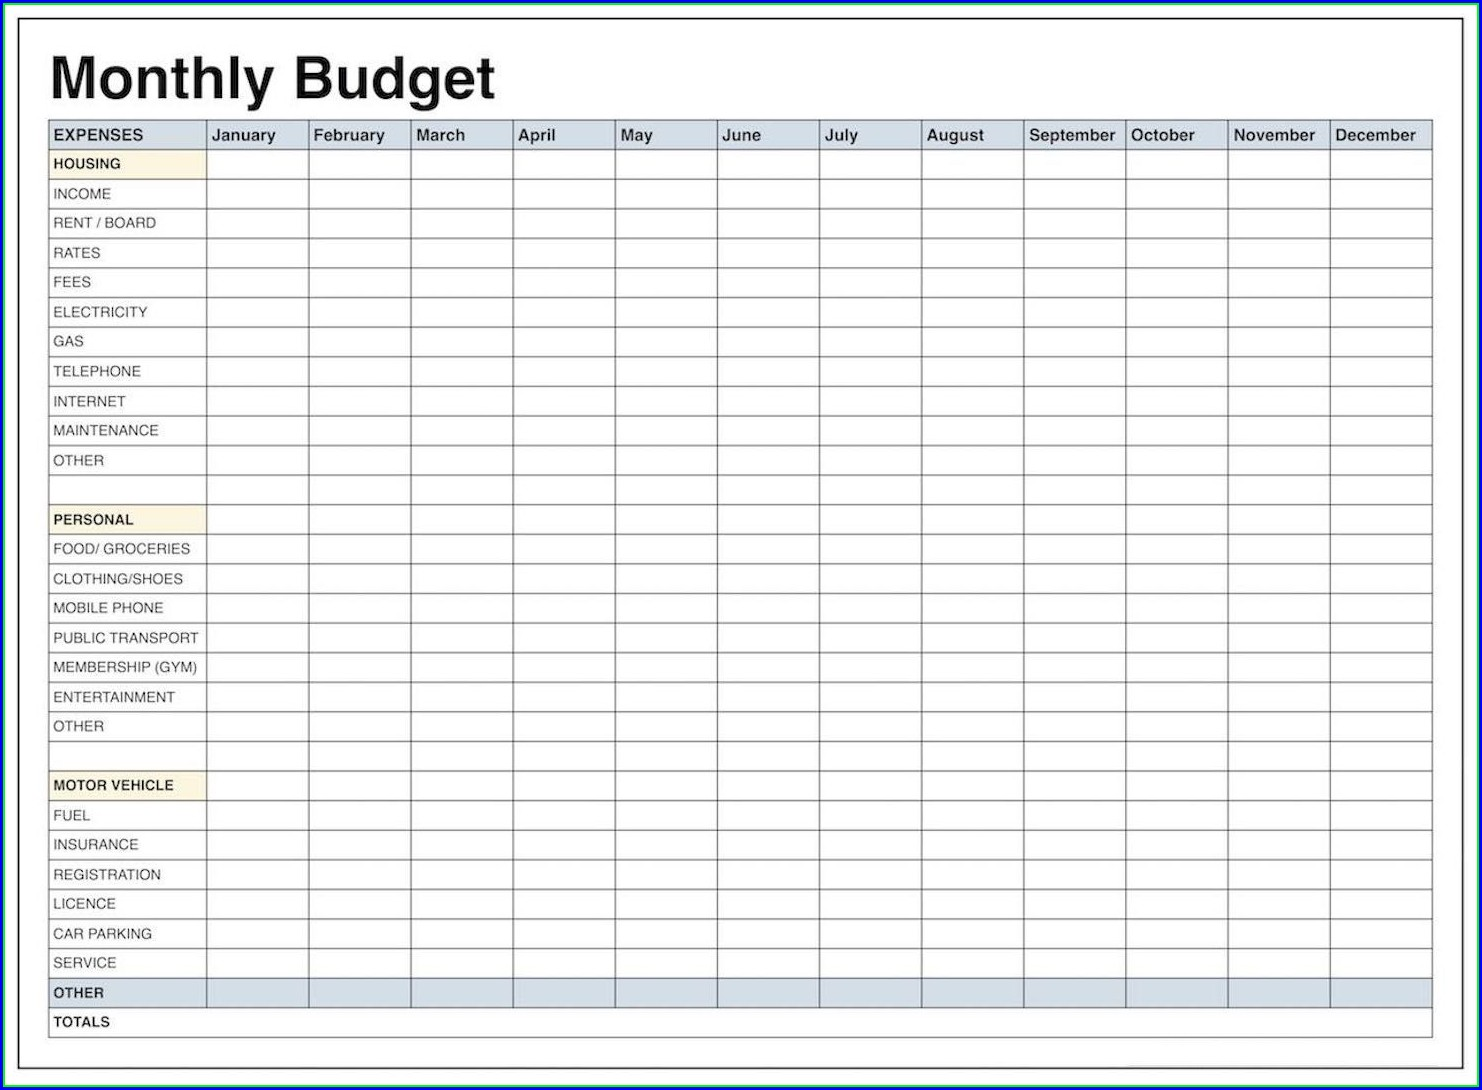 Monthly Expense Blank Budget Worksheet Printable